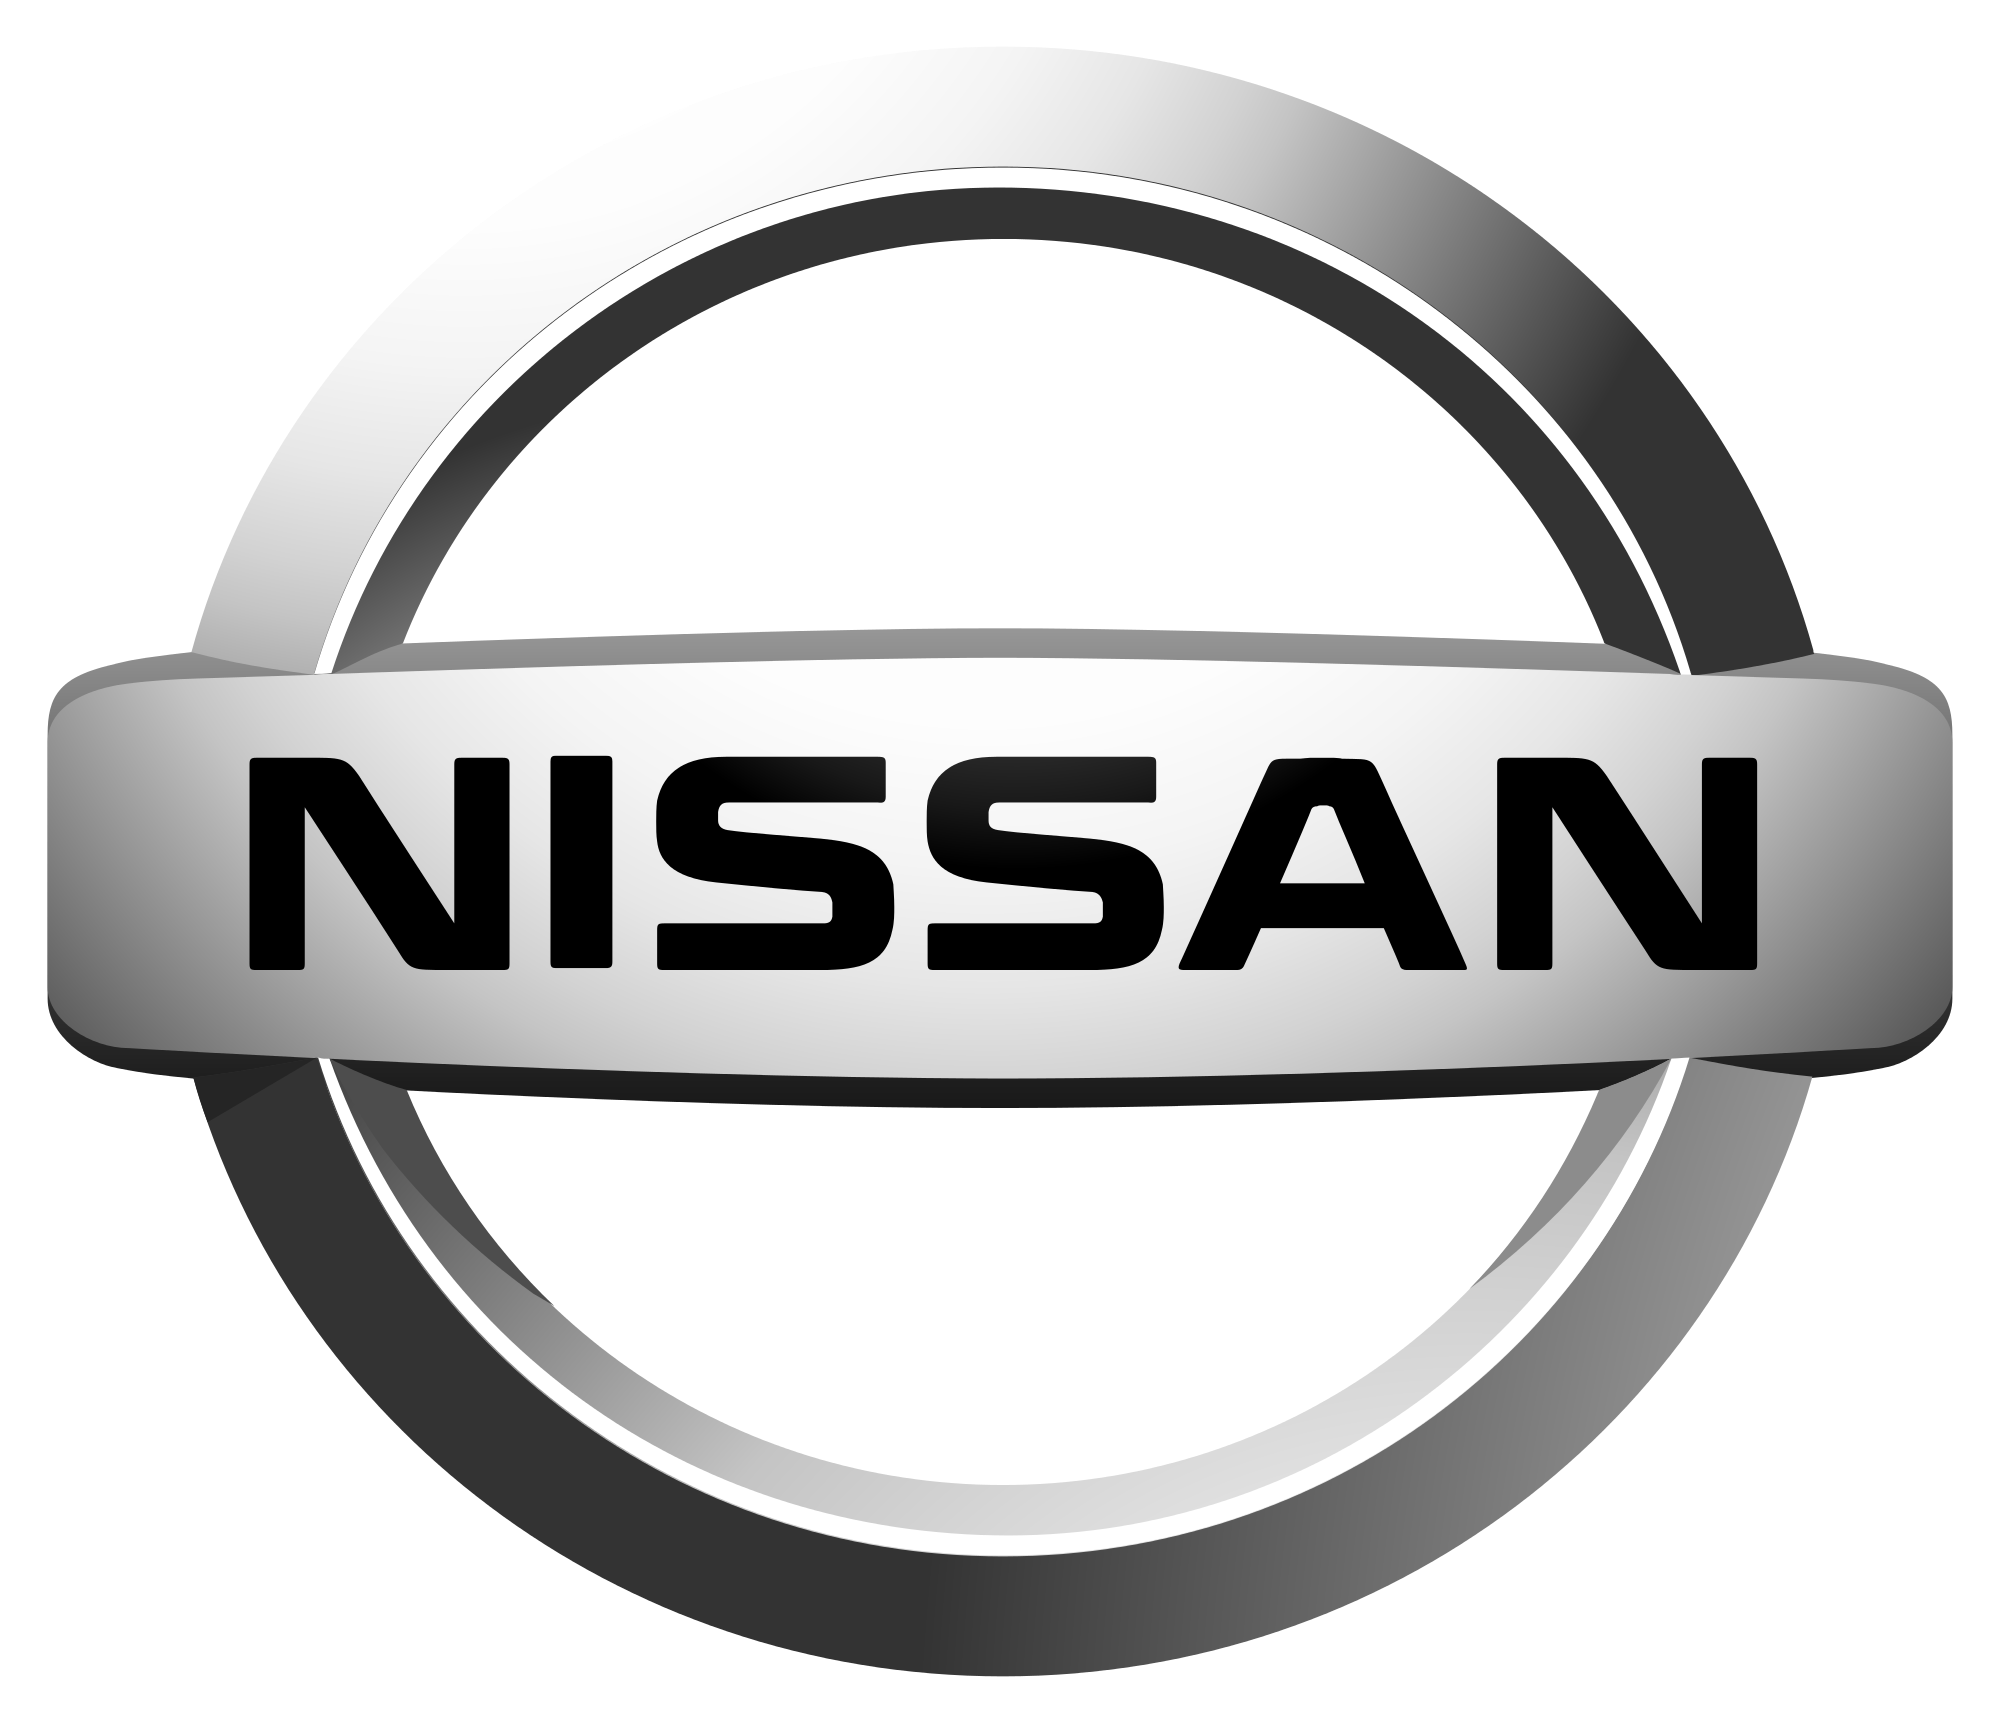 Nissan PNG - 36272